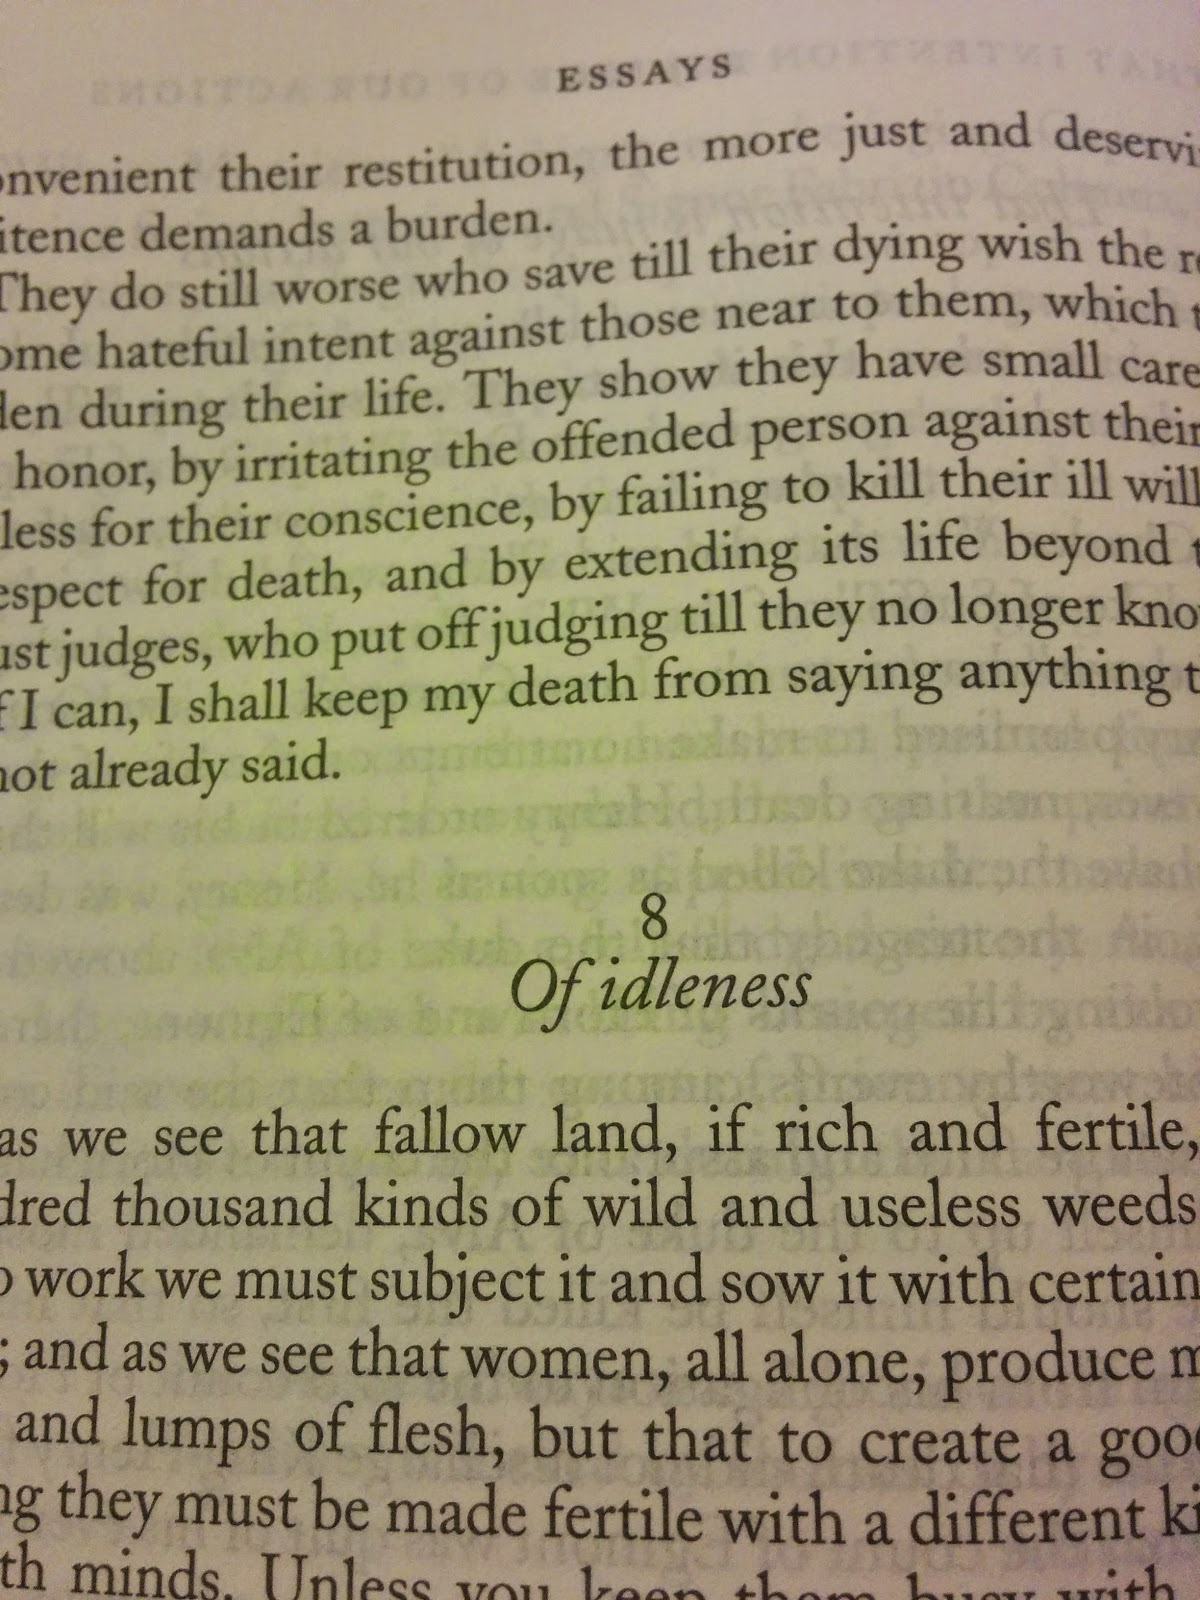 of idleness by michel de montaigne from the complete works my two weeks of family time rest and relaxation i decided over the weekend to crack open my copy of the complete works and see what montaigne has to